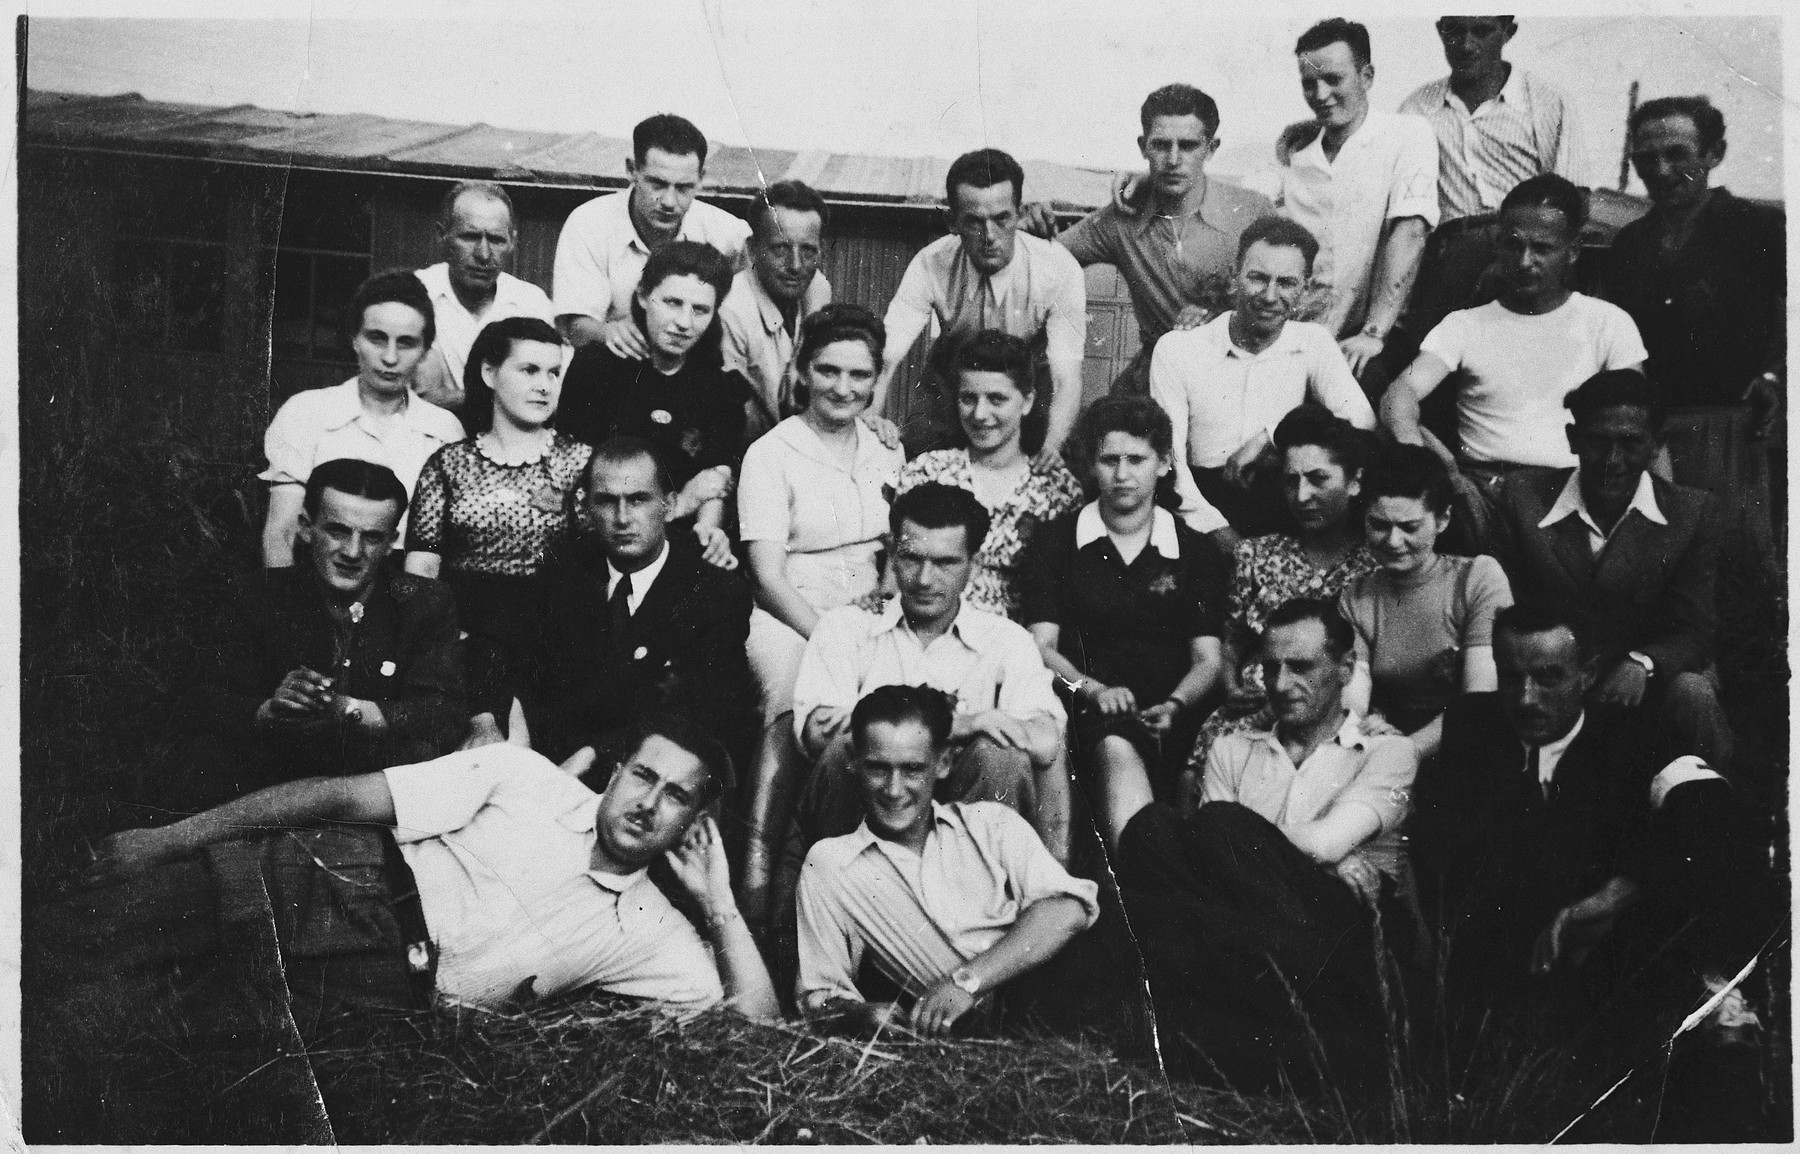 Prisoners in the Markstadt labor camp.  Among those pictured is Dr. Wolf Laitner, seated center, in the white shirt, directly behind the man leaning on his elbow.